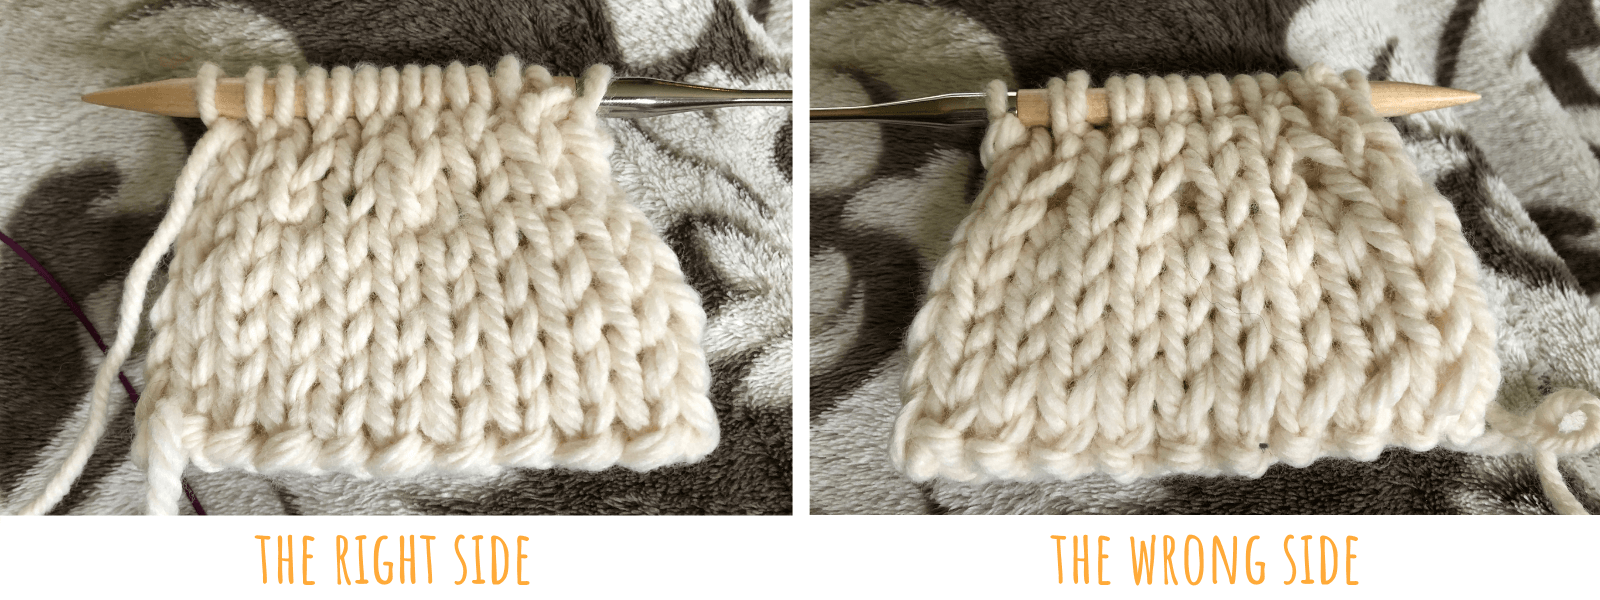 A picture of a decrease in double knitting